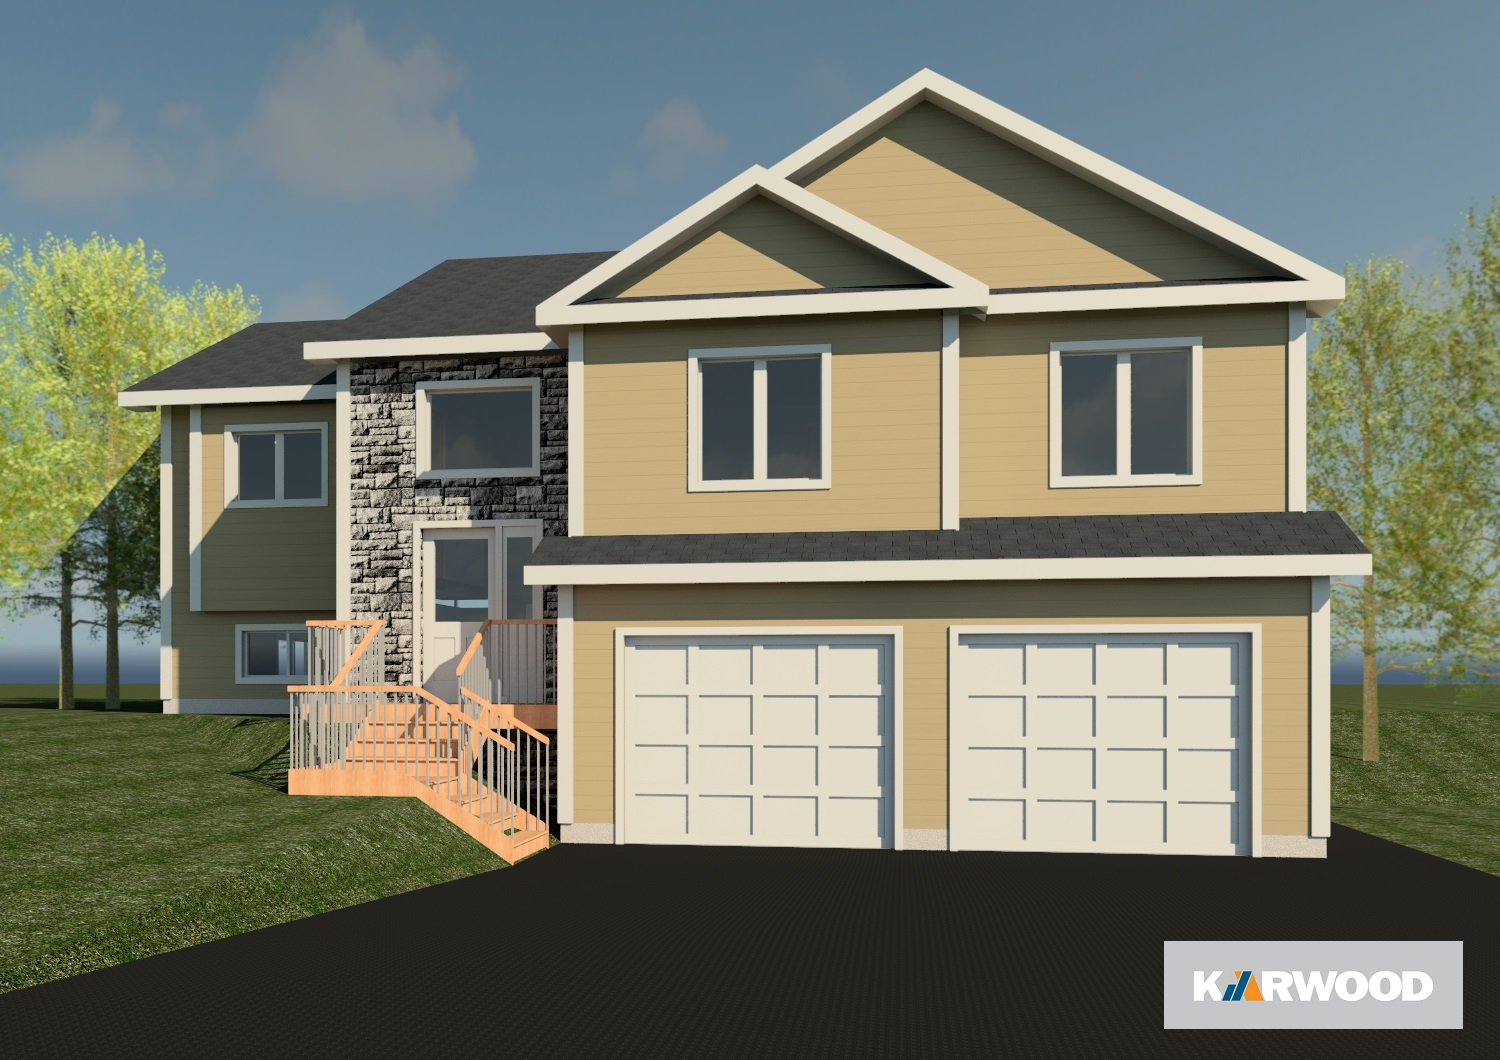 3 BEDROOMS  •  2 BATHROOMS  •  DOUBLE GARAGE  •  1414 SQ FT